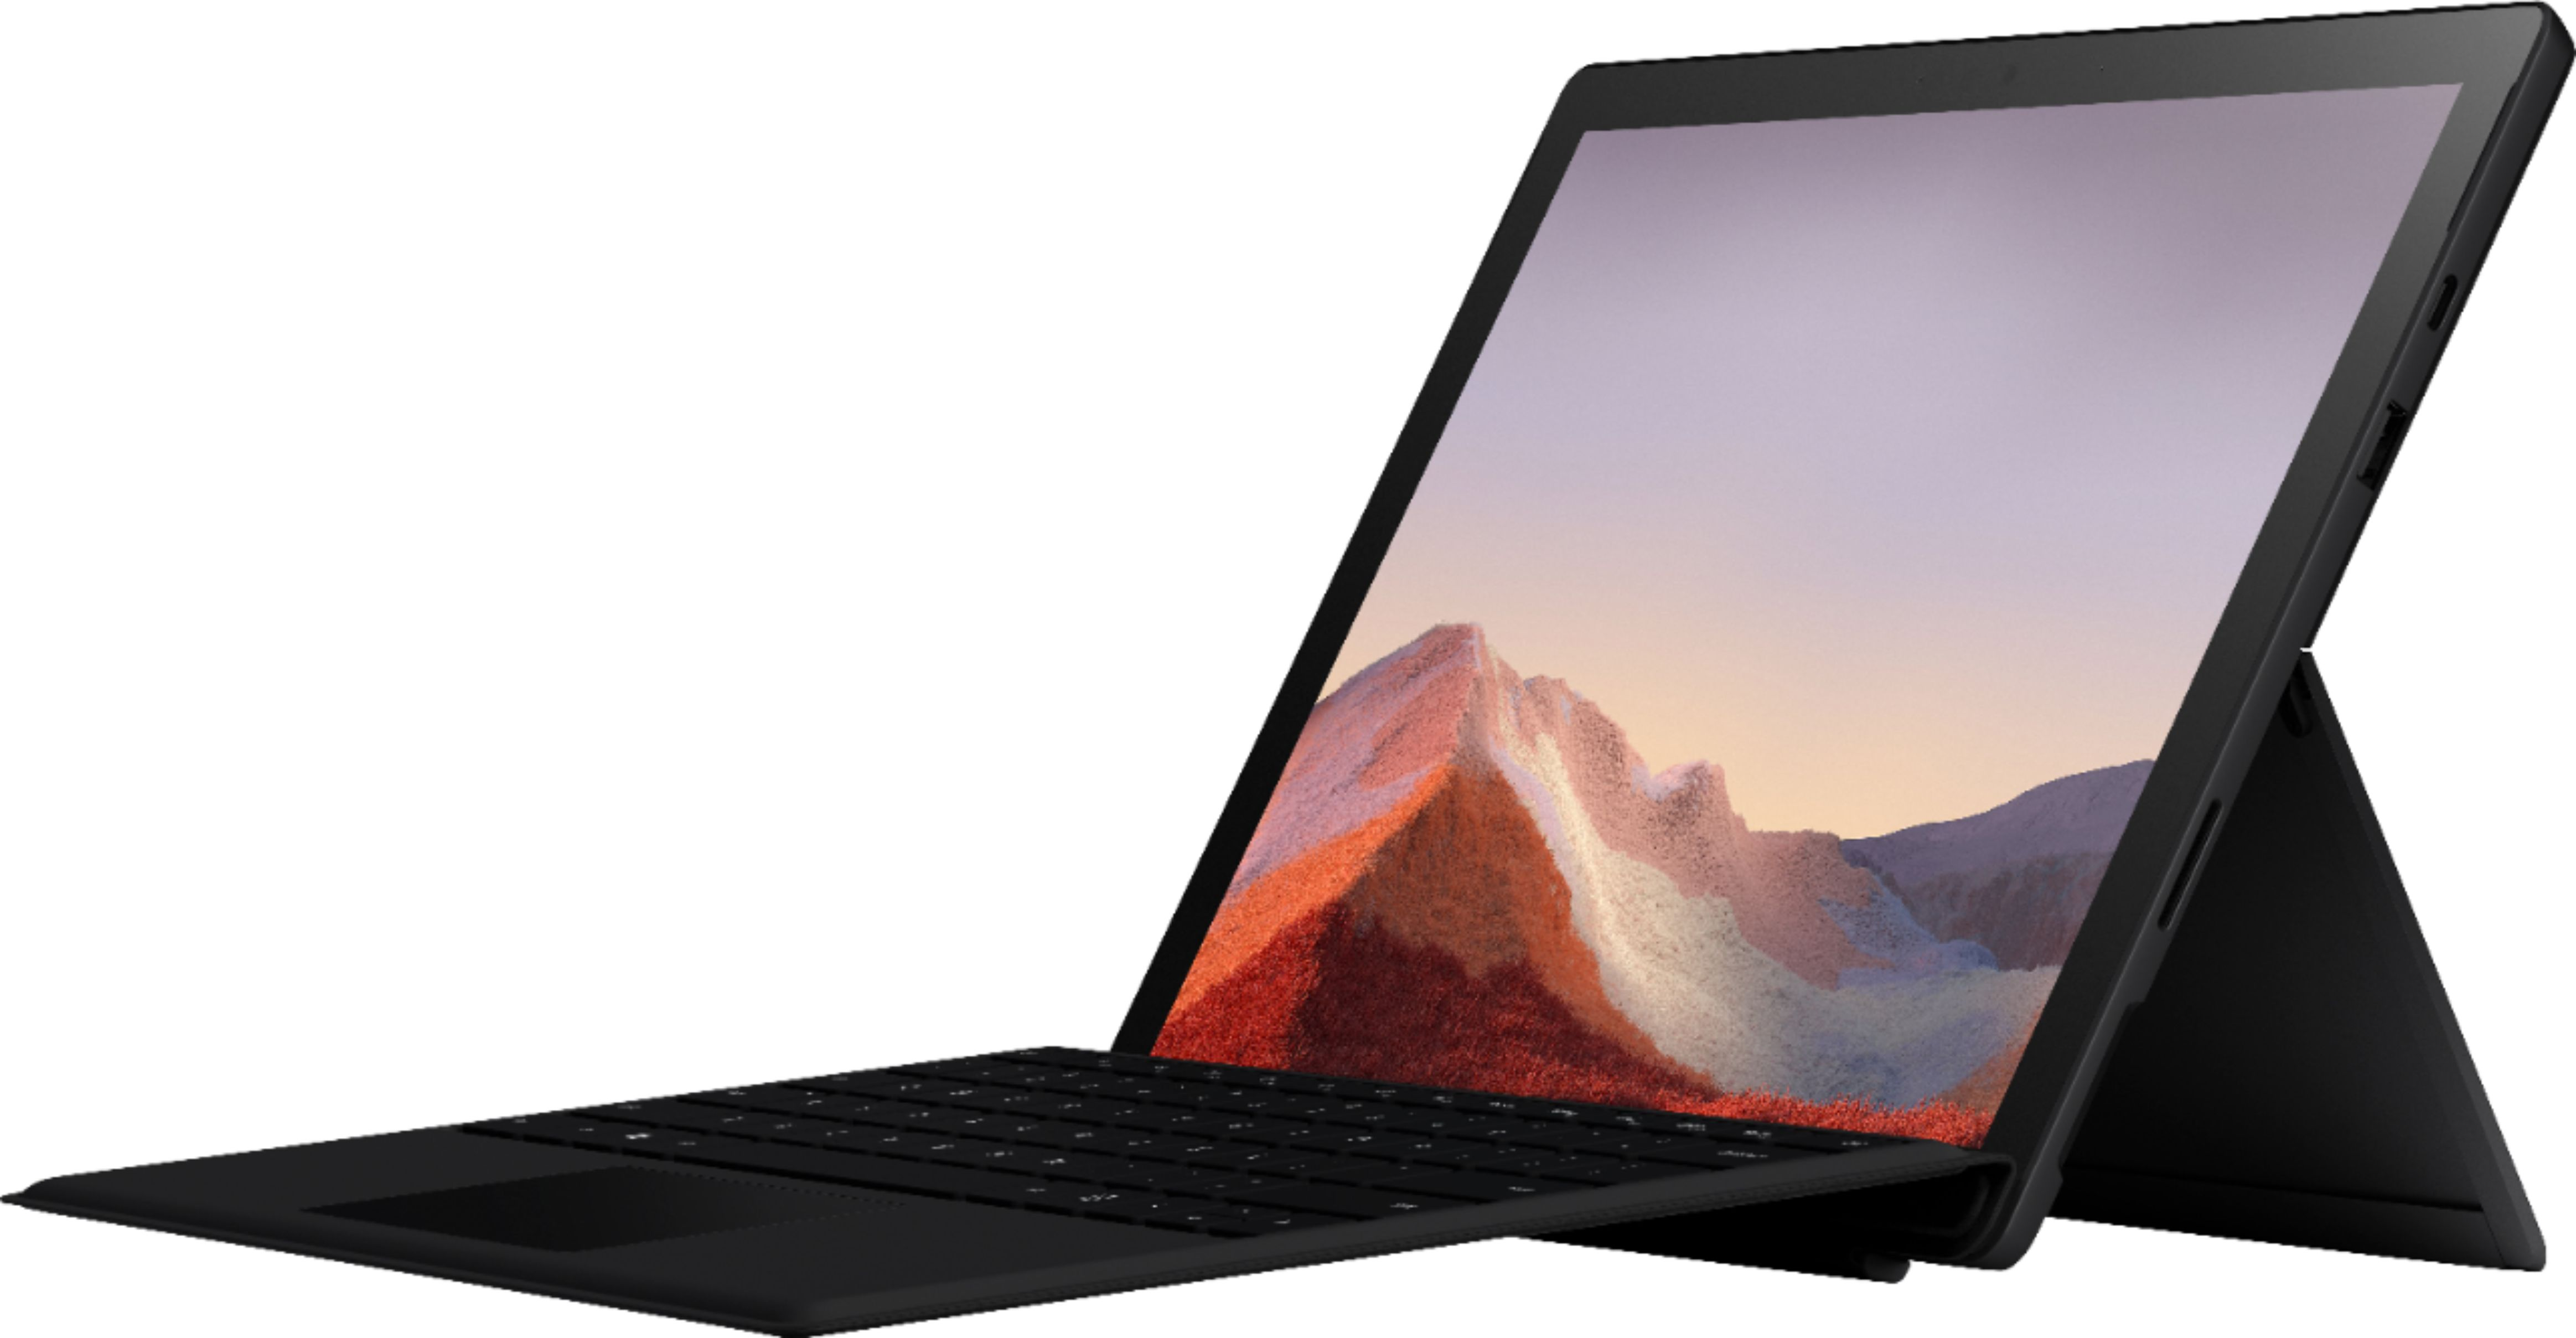 """Front Zoom. Microsoft - Surface Pro 7 - 12.3"""" Touch Screen - Intel Core i5 - 8GB Memory - 256GB SSD with Black Type Cover (Latest Model) - Matte Black."""